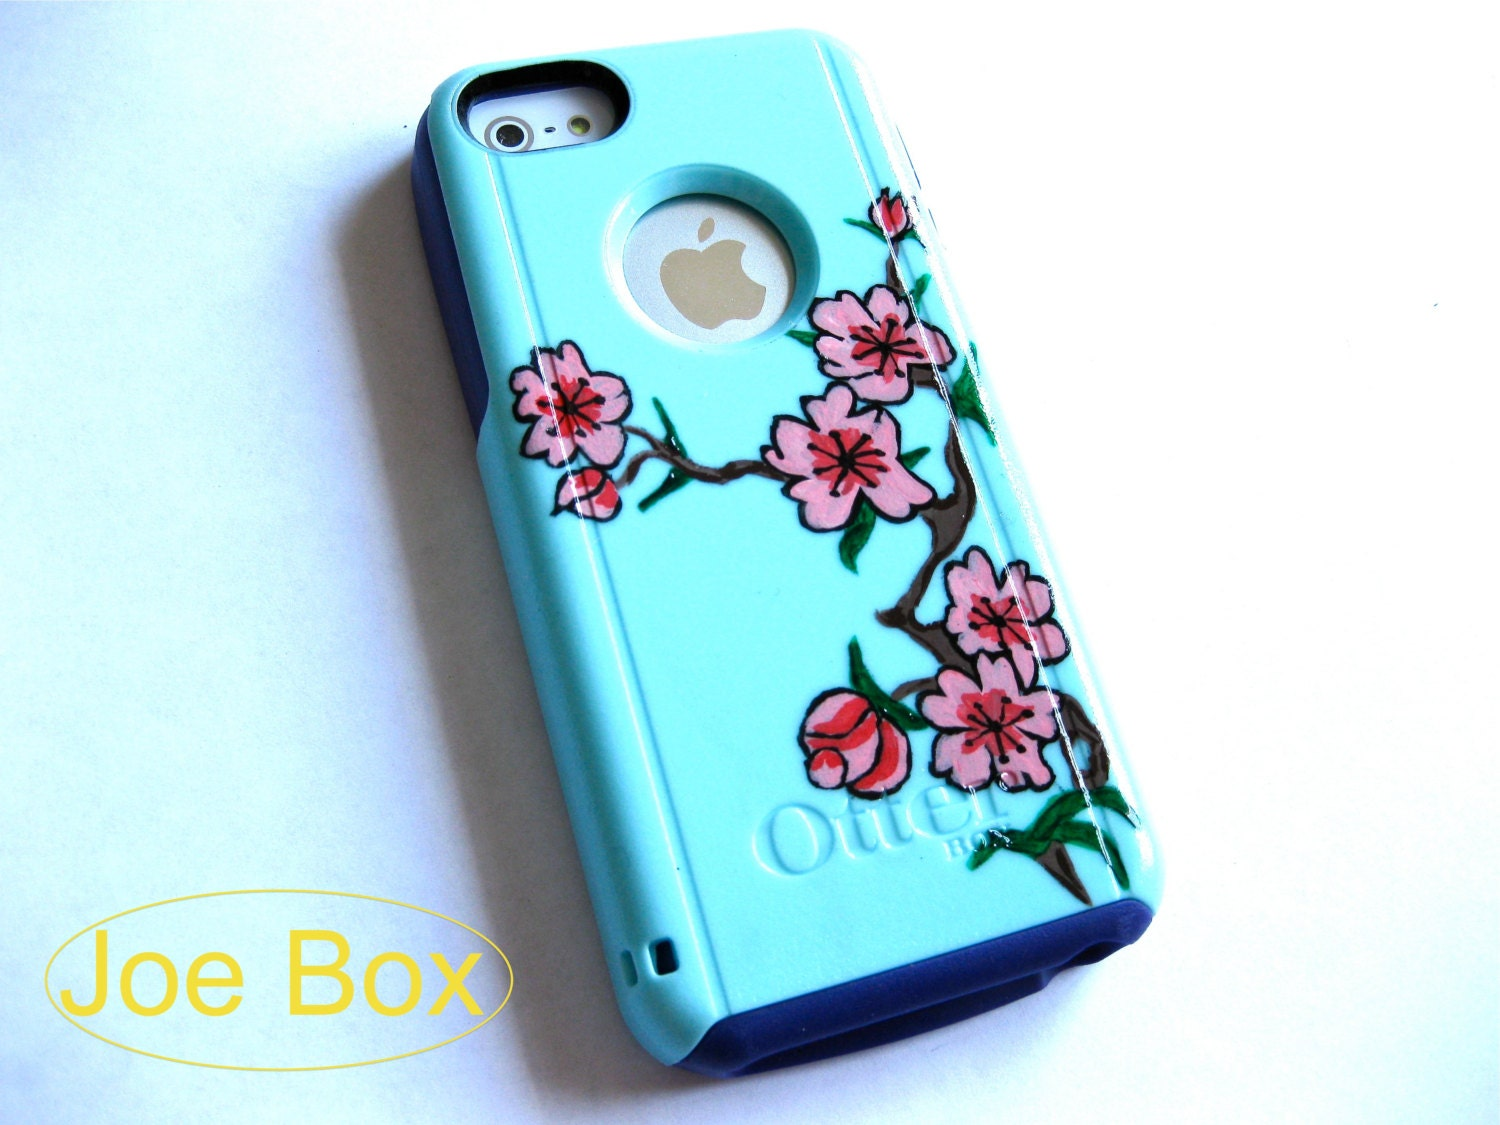 iphone 5c cases etsy otterbox iphone 5c cover iphone 5c otterbox 14648